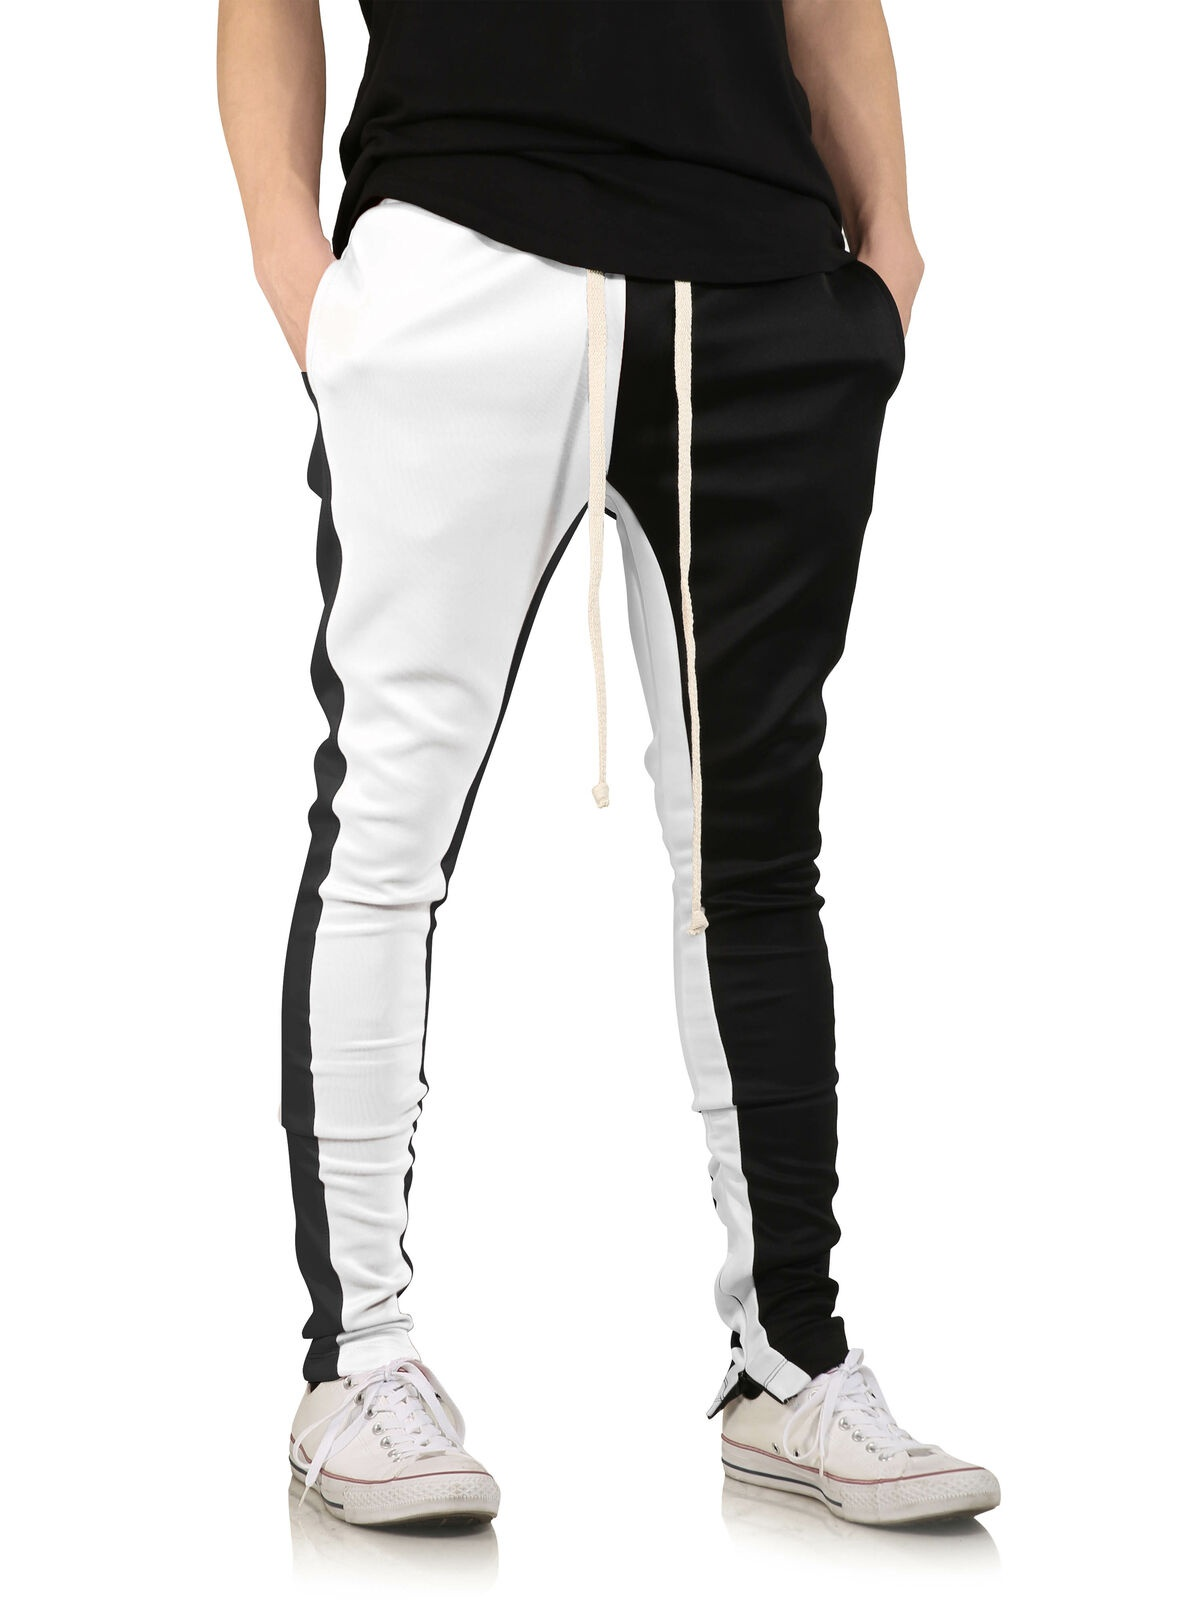 Men's Fashion Casual Sweatpants, Hip Hop Fitness Stitching Trousers